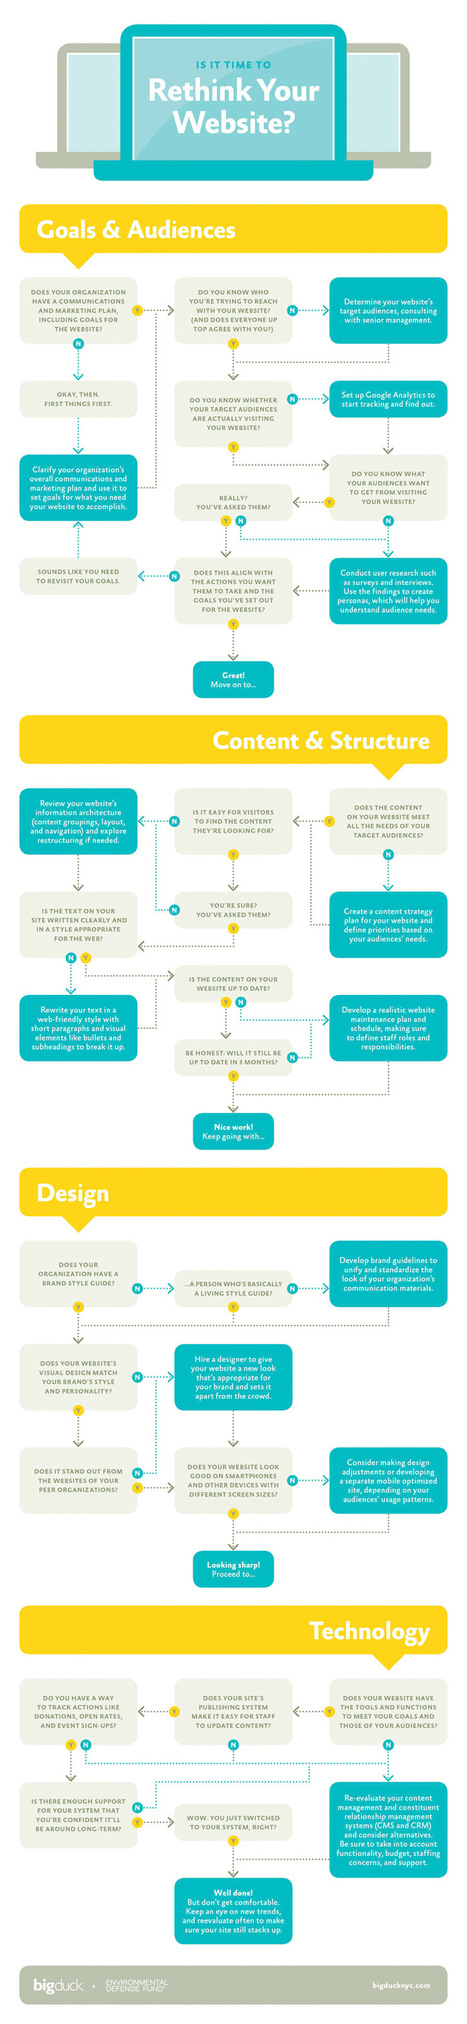 Is it Time to Rethink Your Website – infographic /@BerriePelser | WordPress Google SEO and Social Media | Scoop.it